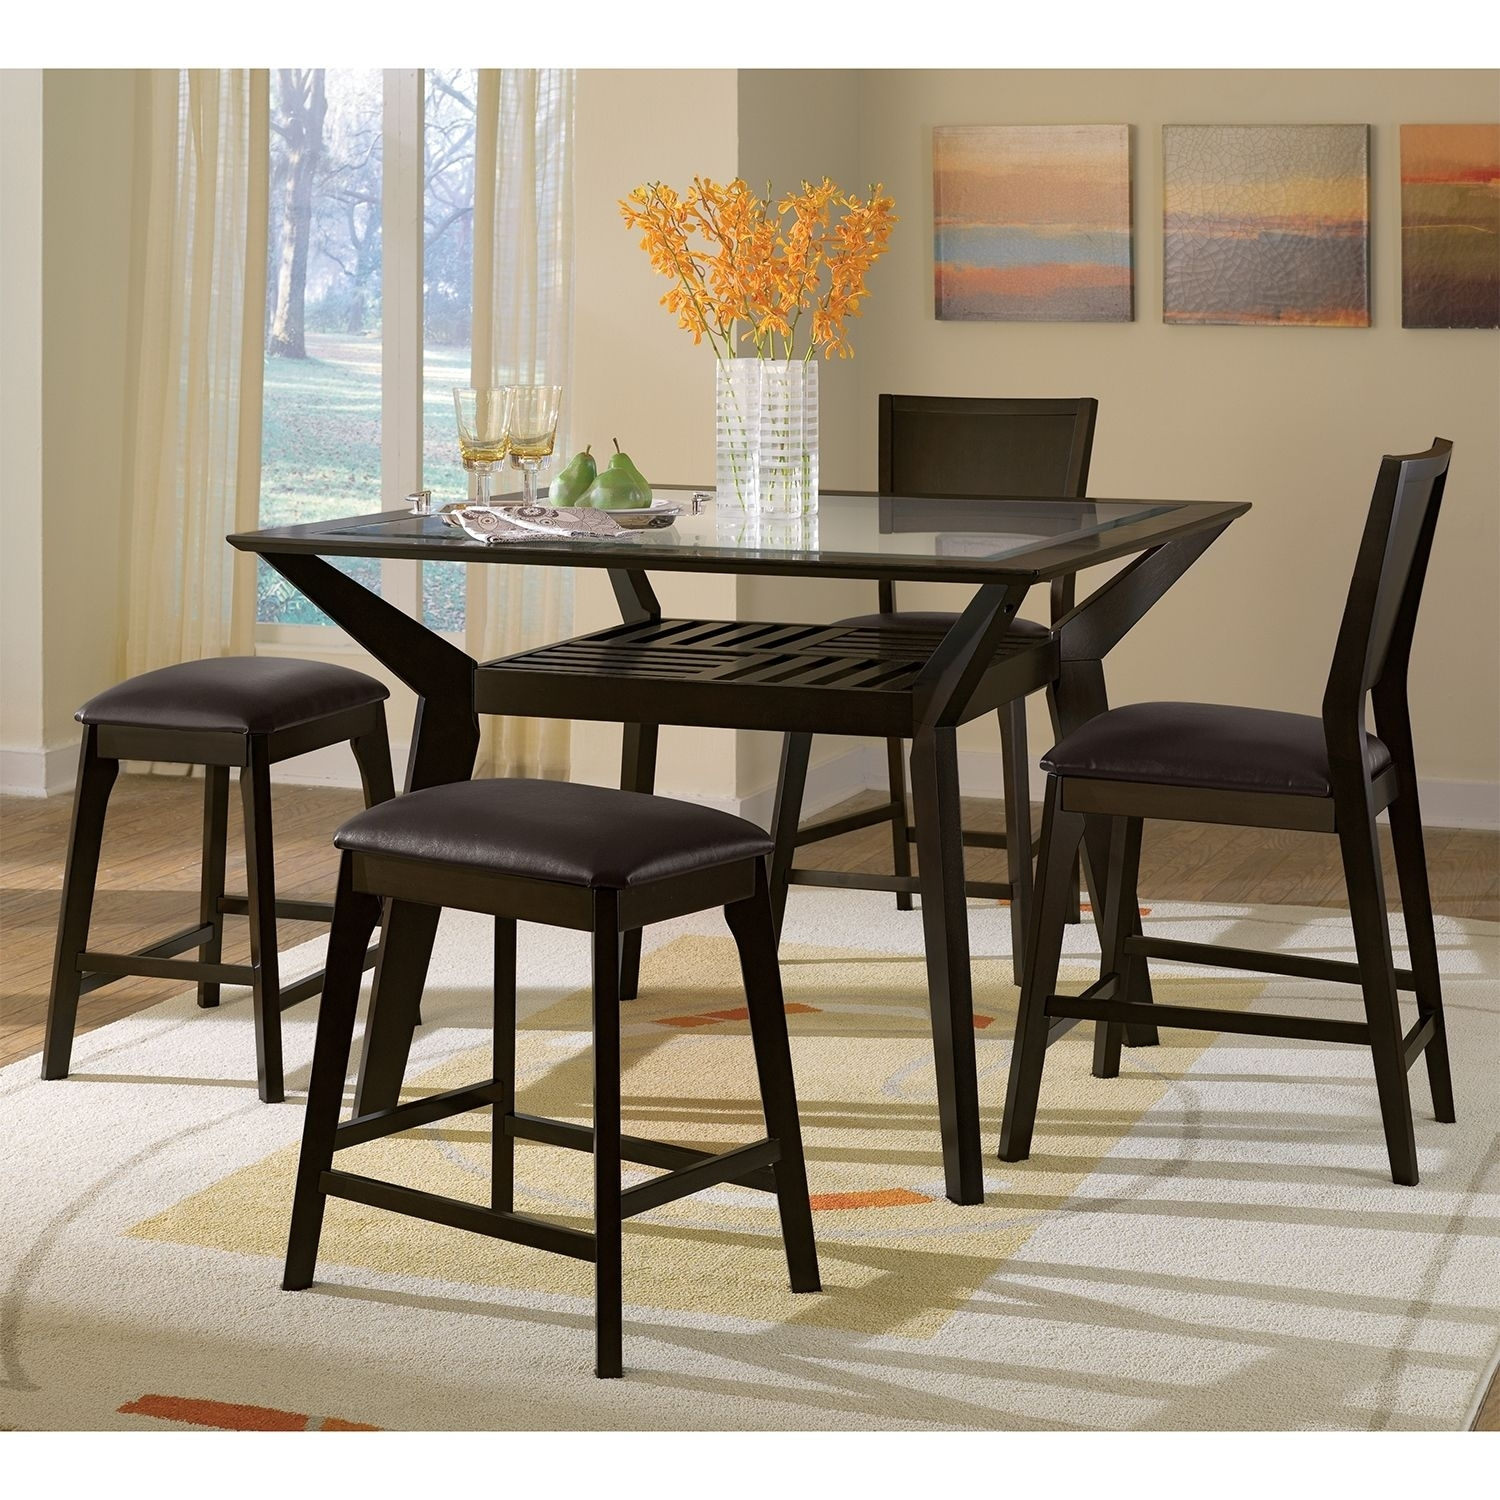 Mystic 5 Pc. Counter Height Dinette W/ 2 Backless Stools | Value In 2017 Palazzo 7 Piece Dining Sets With Mindy Slipcovered Side Chairs (Photo 18 of 20)